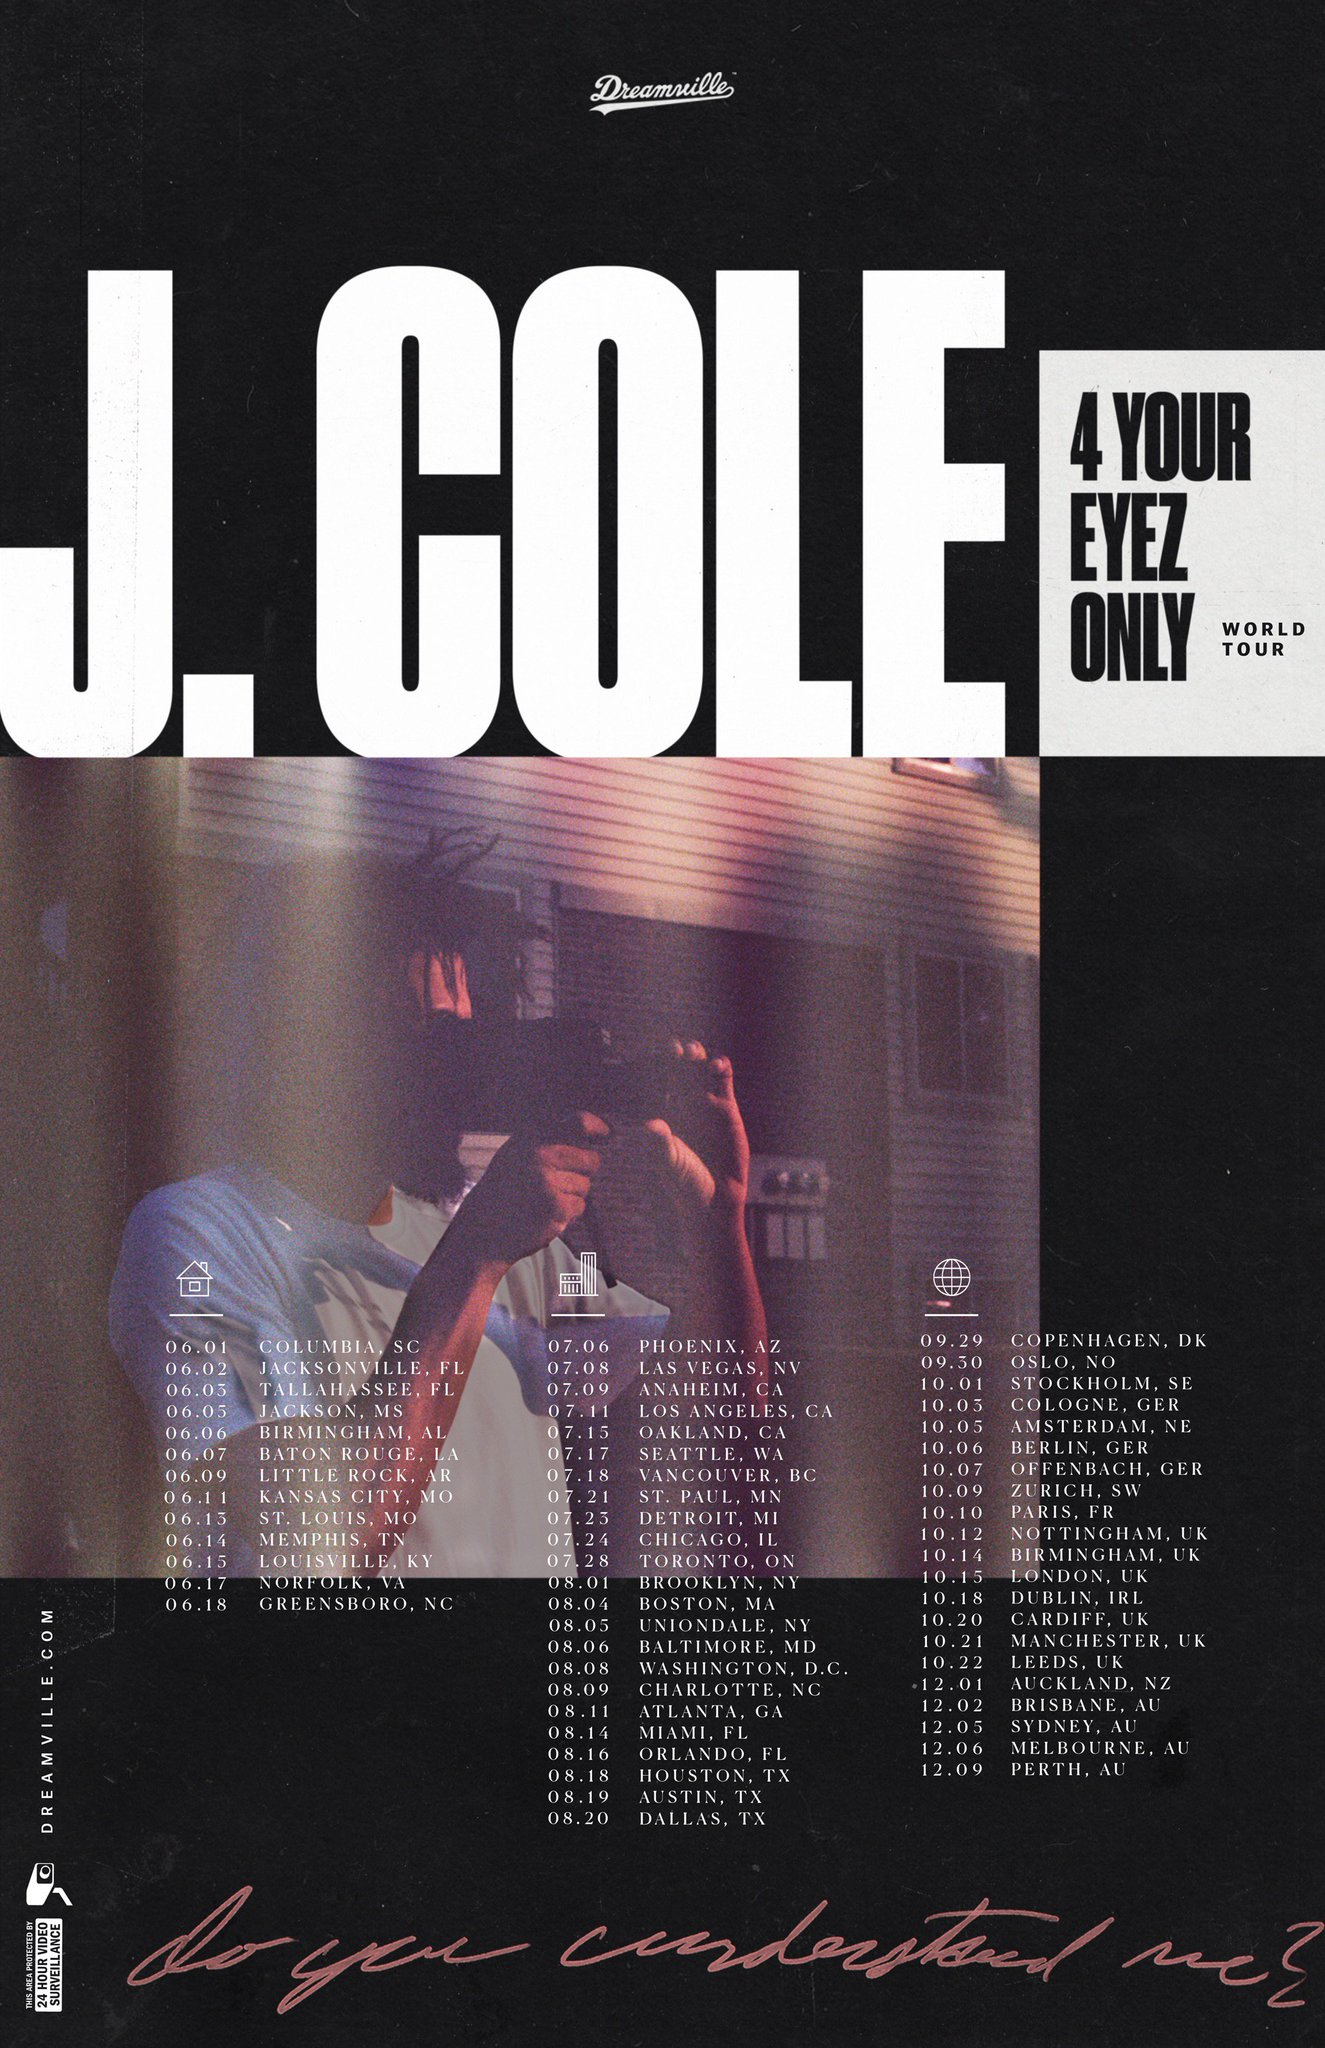 4 Your Eyez Only Tour. On sale Friday. See you in a few. https://t.co/uSjyv2SENG https://t.co/bKfDXQLPgn